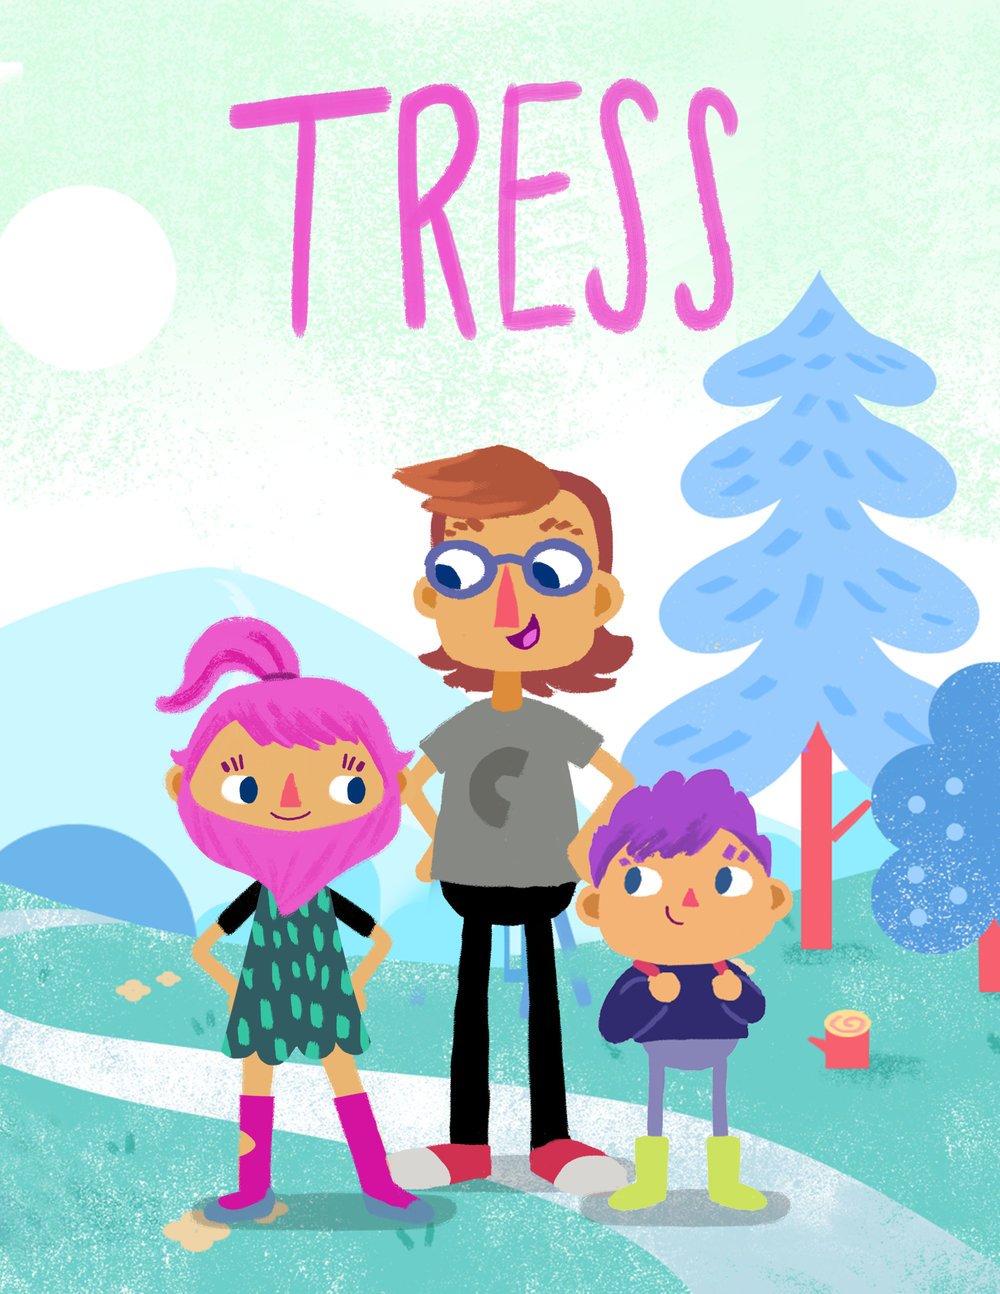 TRESS  Tress is not a show about a girl with a pink beard—it's a show about Tress, who has a pink beard, but also a dad and a brother and a million followers she likes to talk to through her videos as she lives her life in a sleepy town in Maine. (Animated)